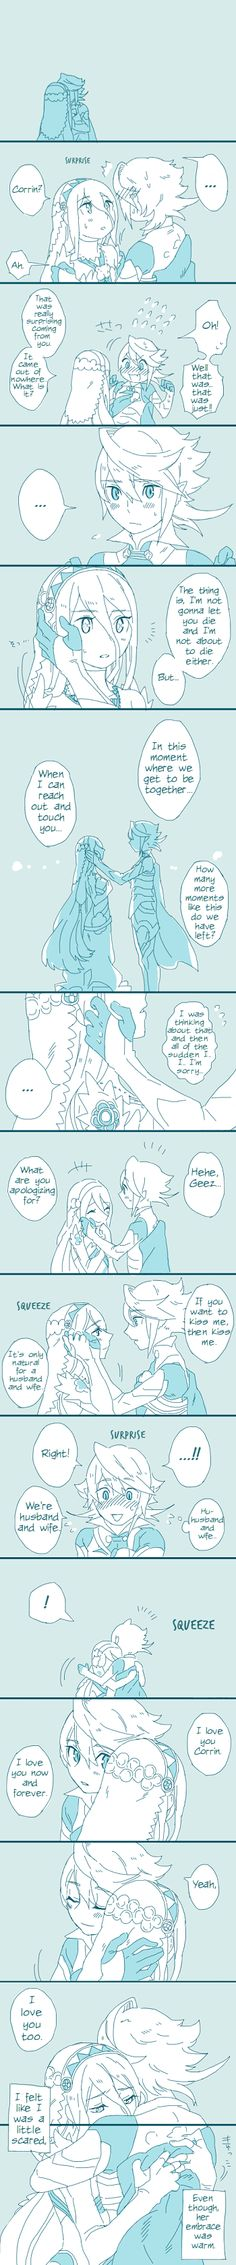 Fire Emblem Fates - Corrin x Azura comic [English translated]